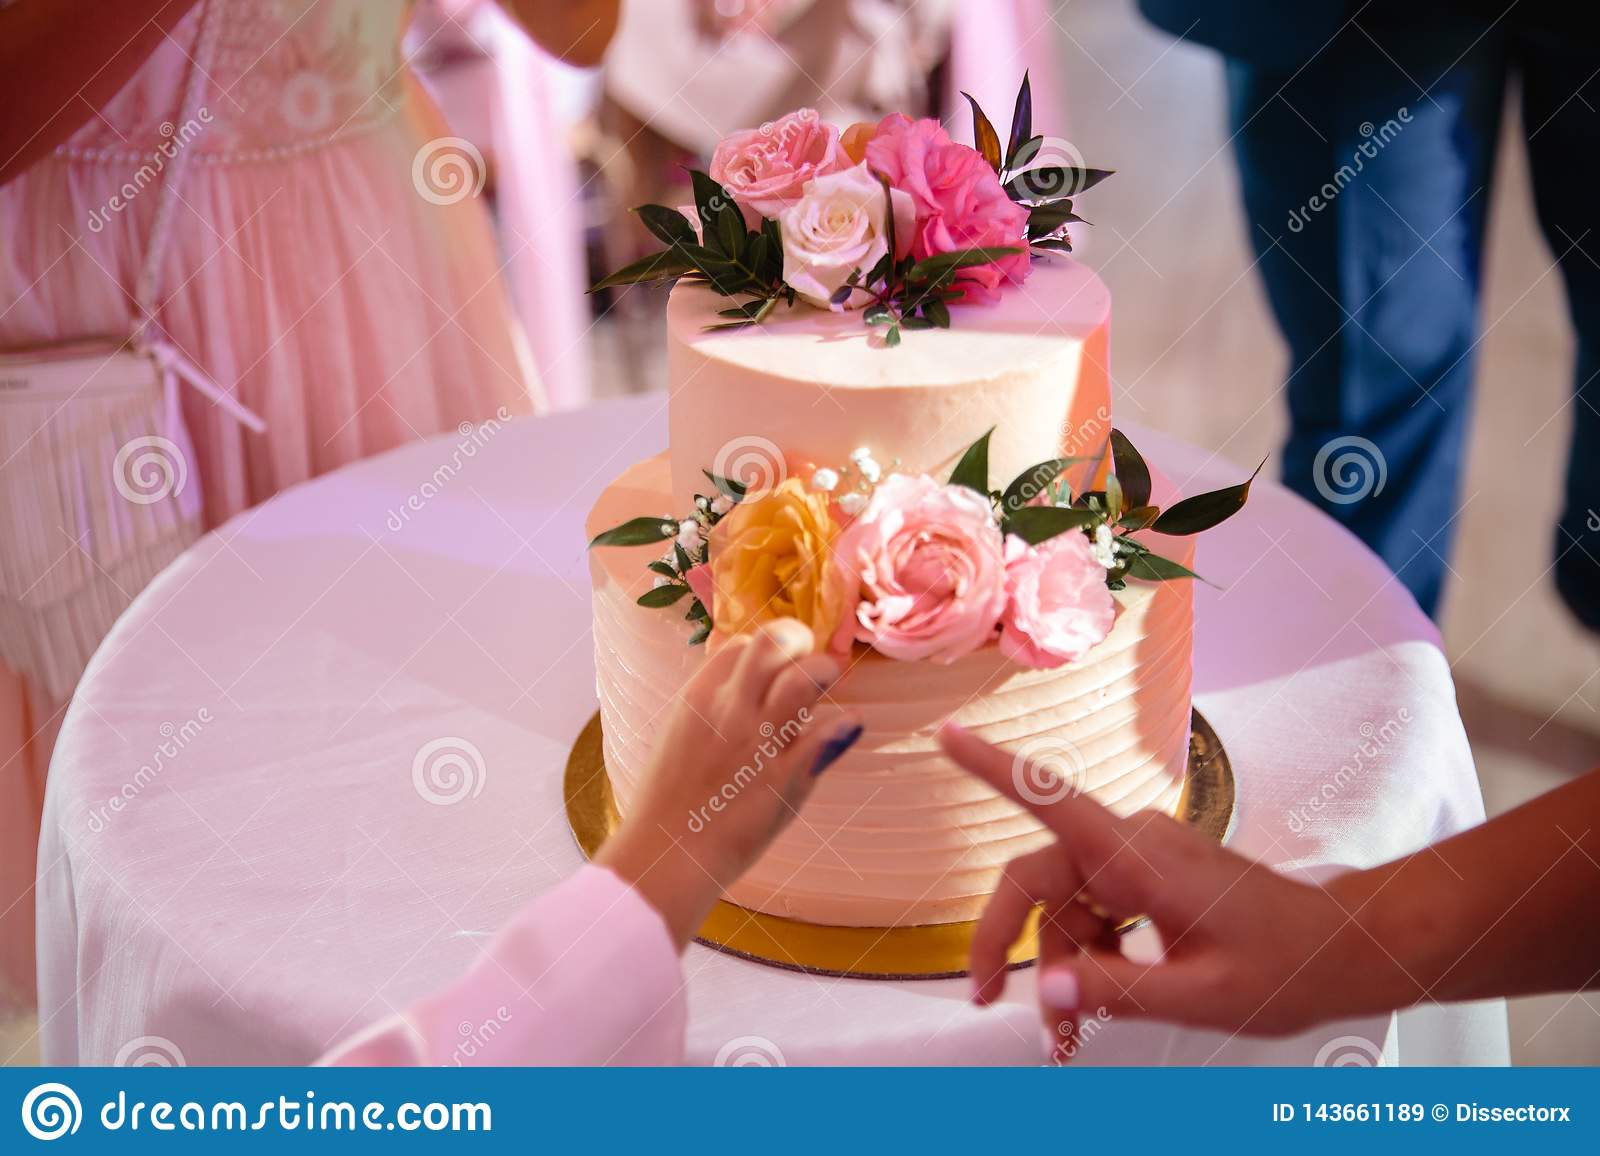 A child`s hand leaning toward the wedding cake in ecological natural style - His parent shows with her finger that he